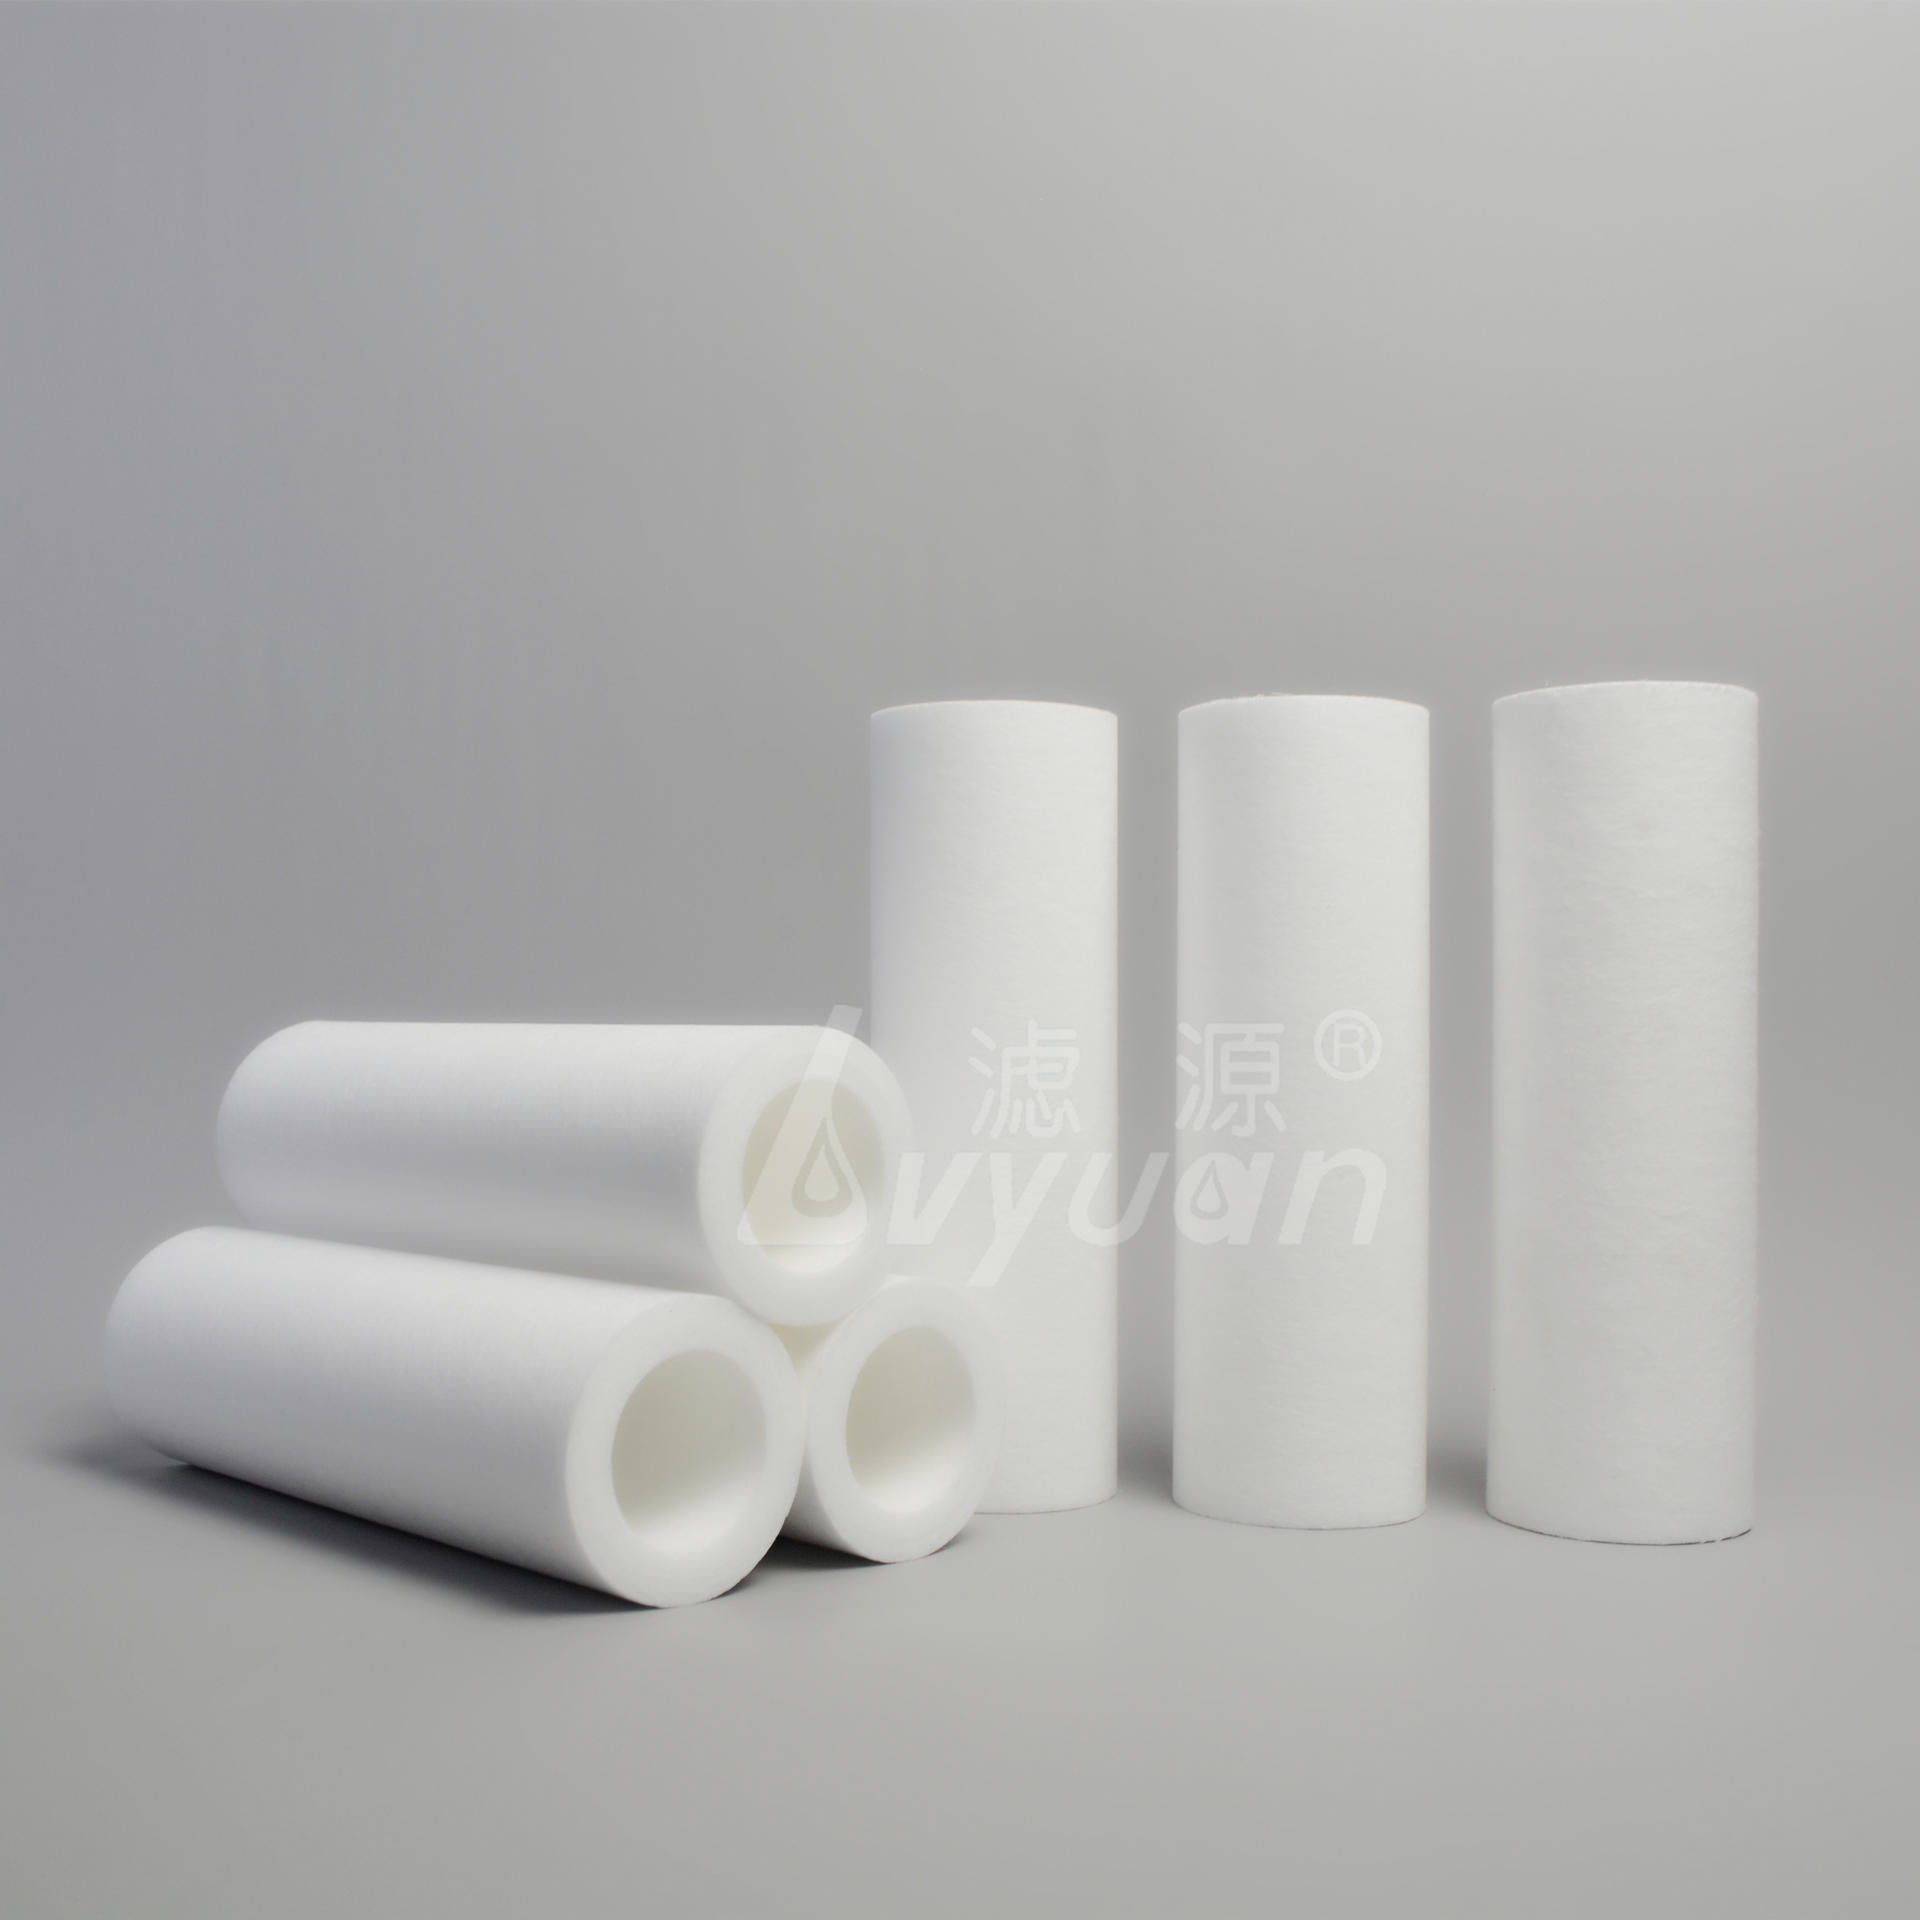 10 20 30 40 inch pp melt blown filter cartridge filter water with 1 3 5 micron